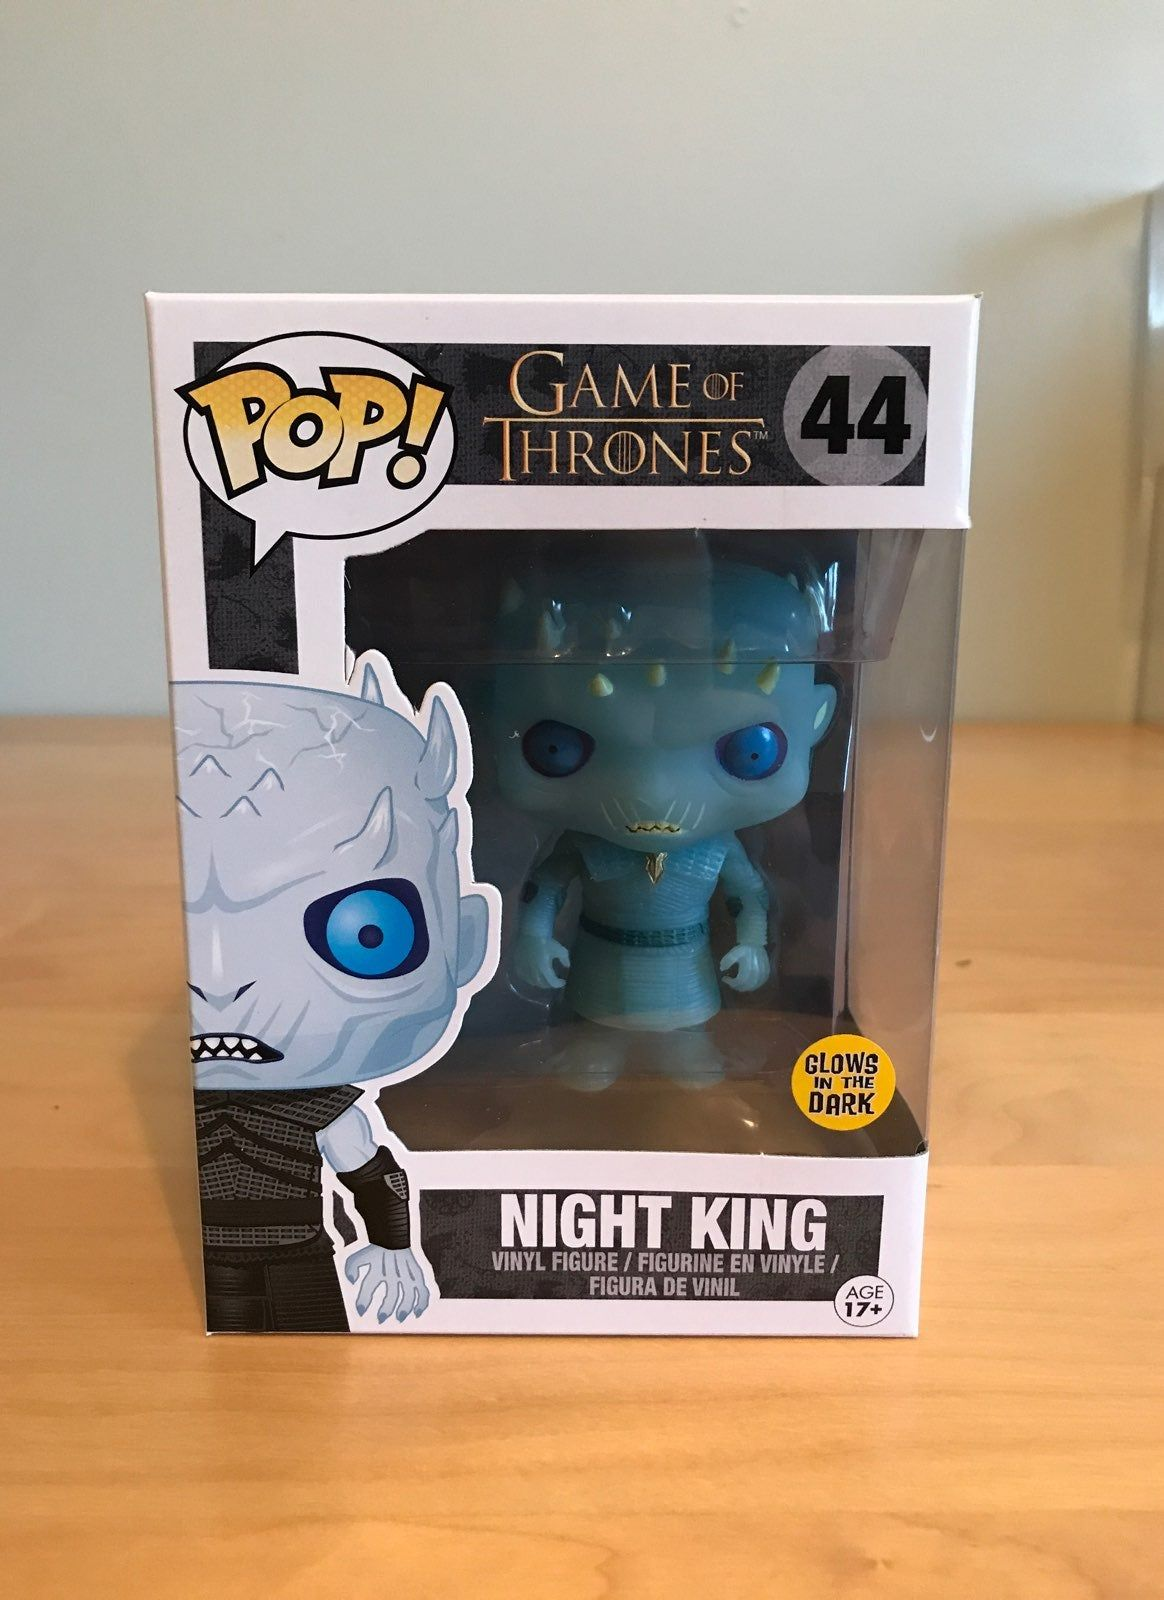 For Sale Is A Glow In The Dark Night King Pop From Game Of Thrones The Box Is In Great Condition And Ships In A Soft Prot Night King Glow Games